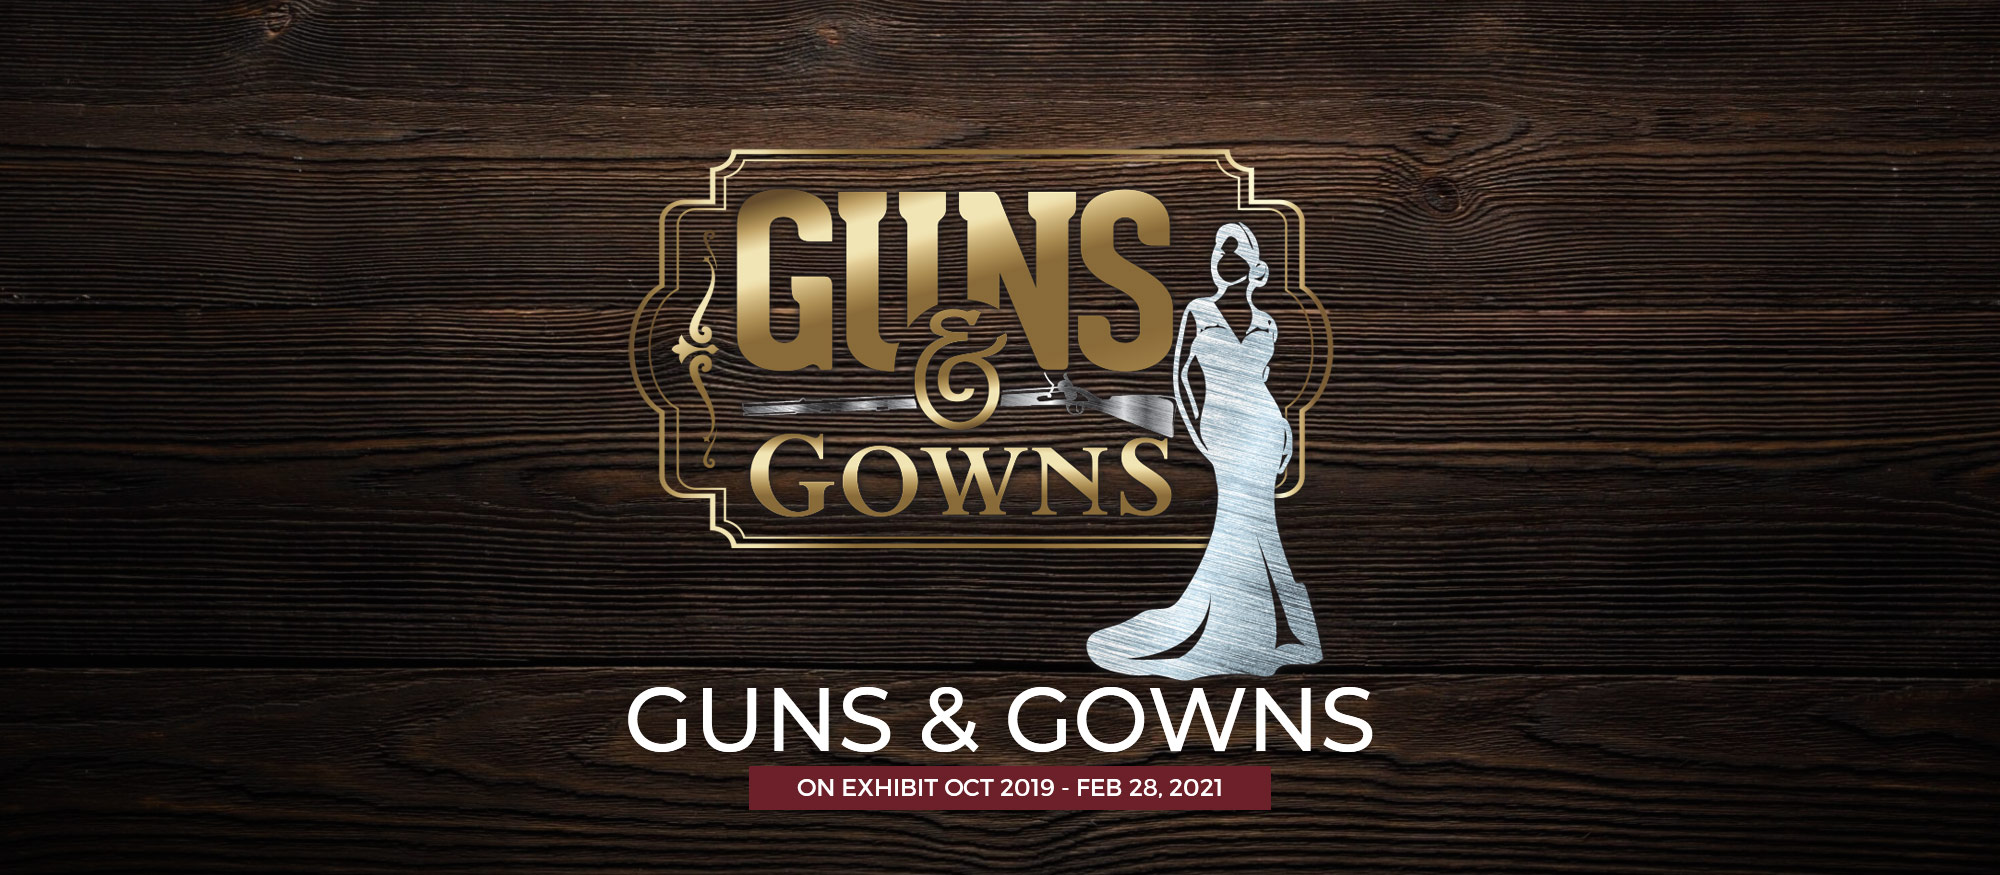 Guns & Gowns Title with wood background